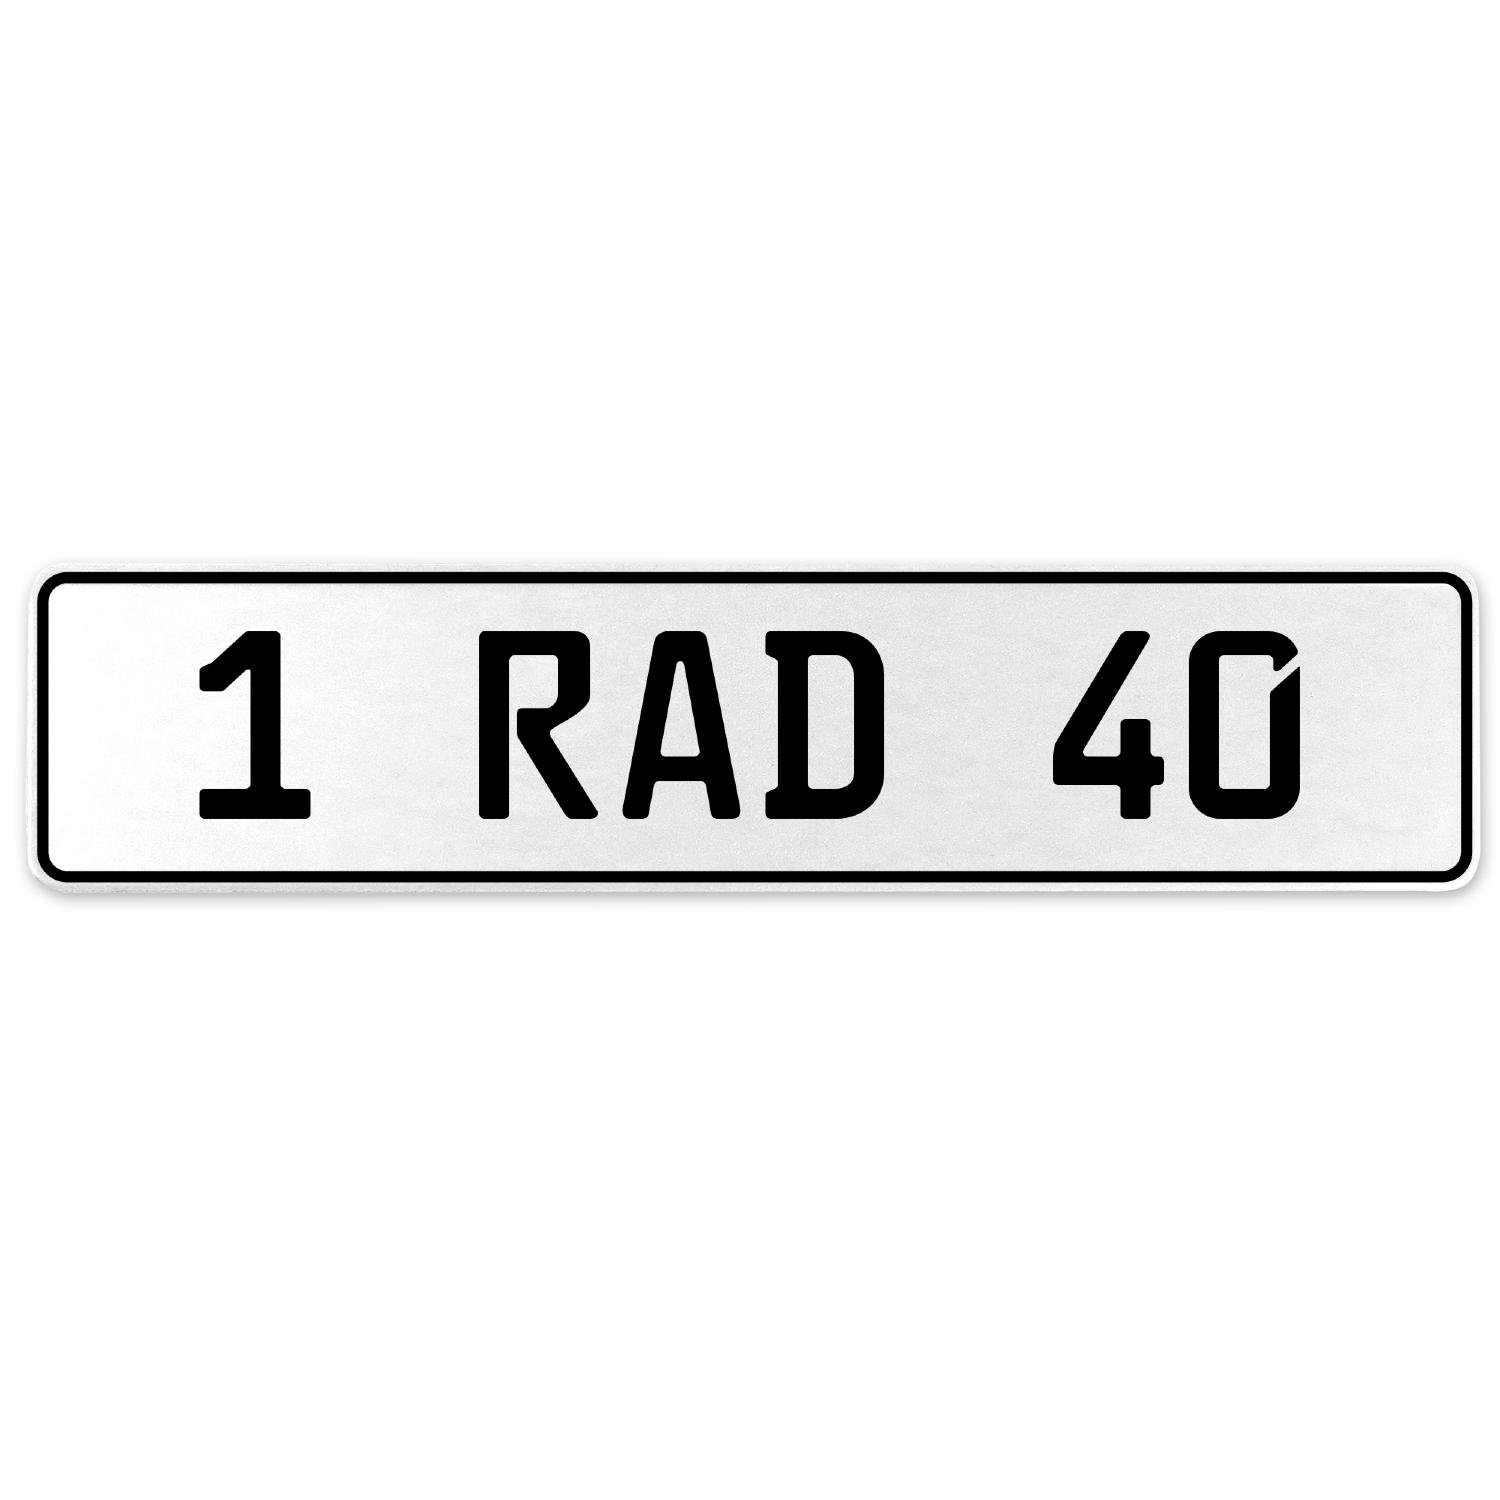 Vintage Parts 554043 1 RAD 40 White Stamped Aluminum European License Plate